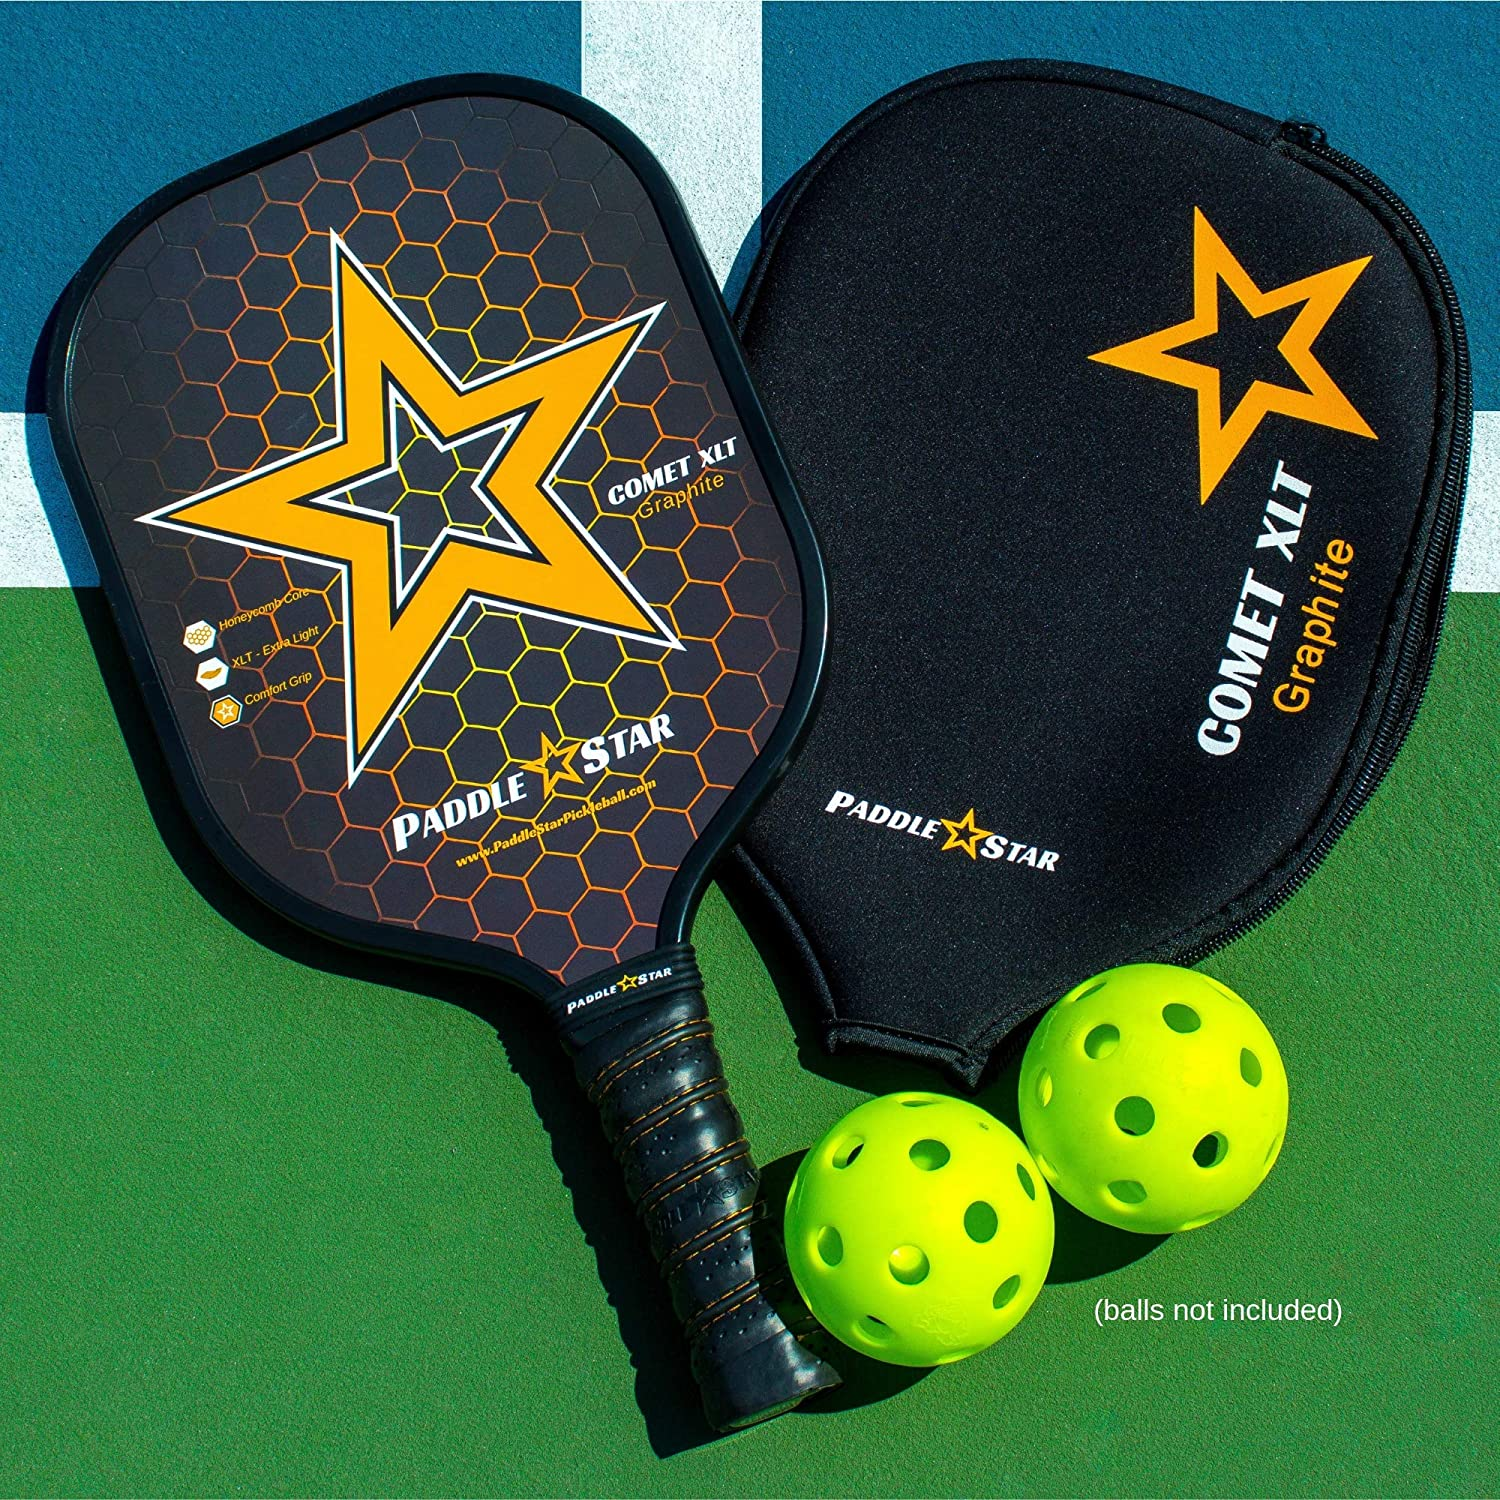 Paddle Star Comet XLT Graphite Pickleball Paddles - Polymer Honeycomb Core w/Comfort Grip for Elite Ball Control, Spin & Power - Premium 7.5 oz Set ...